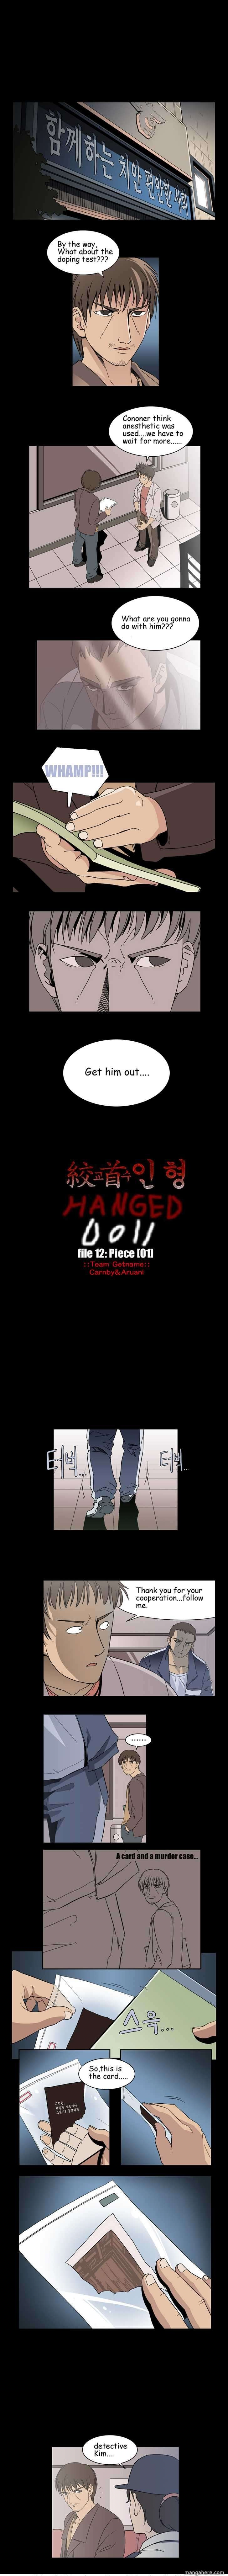 Hanged Doll 31 Page 1